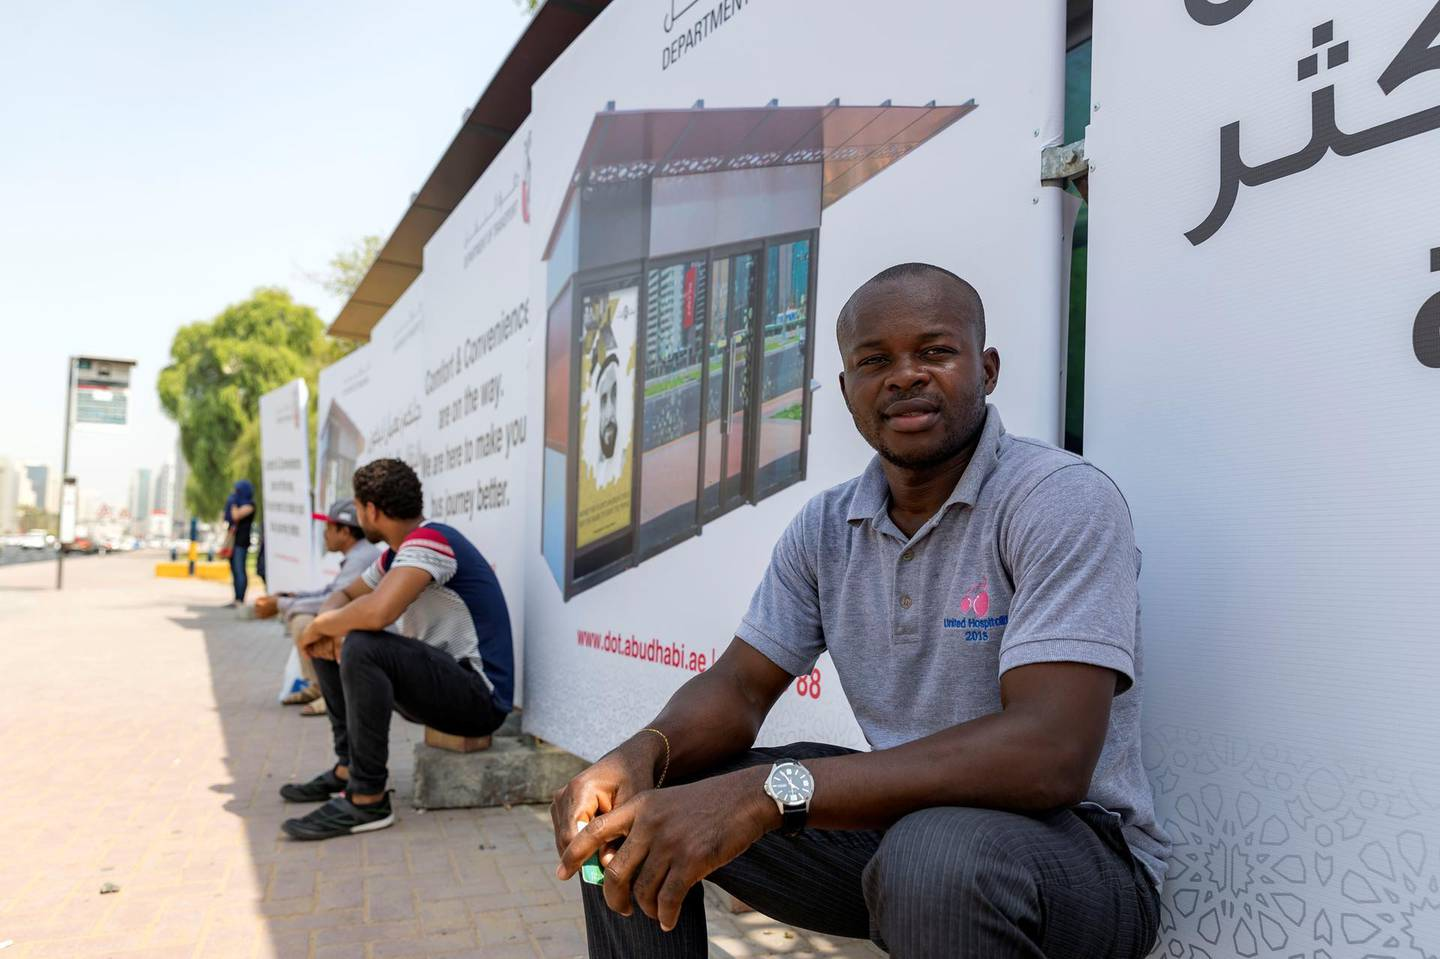 Abu Dhabi, United Arab Emirates - August 14, 2018: Bus user Brain Ekole. A new bus shelter being built in Abu Dhabi. A story on the reaction from users of the bus service to the new shelters. Tuesday, August 14th, 2018 on Sultan bin Zayed the 1st Street, Abu Dhabi. Chris Whiteoak / The National